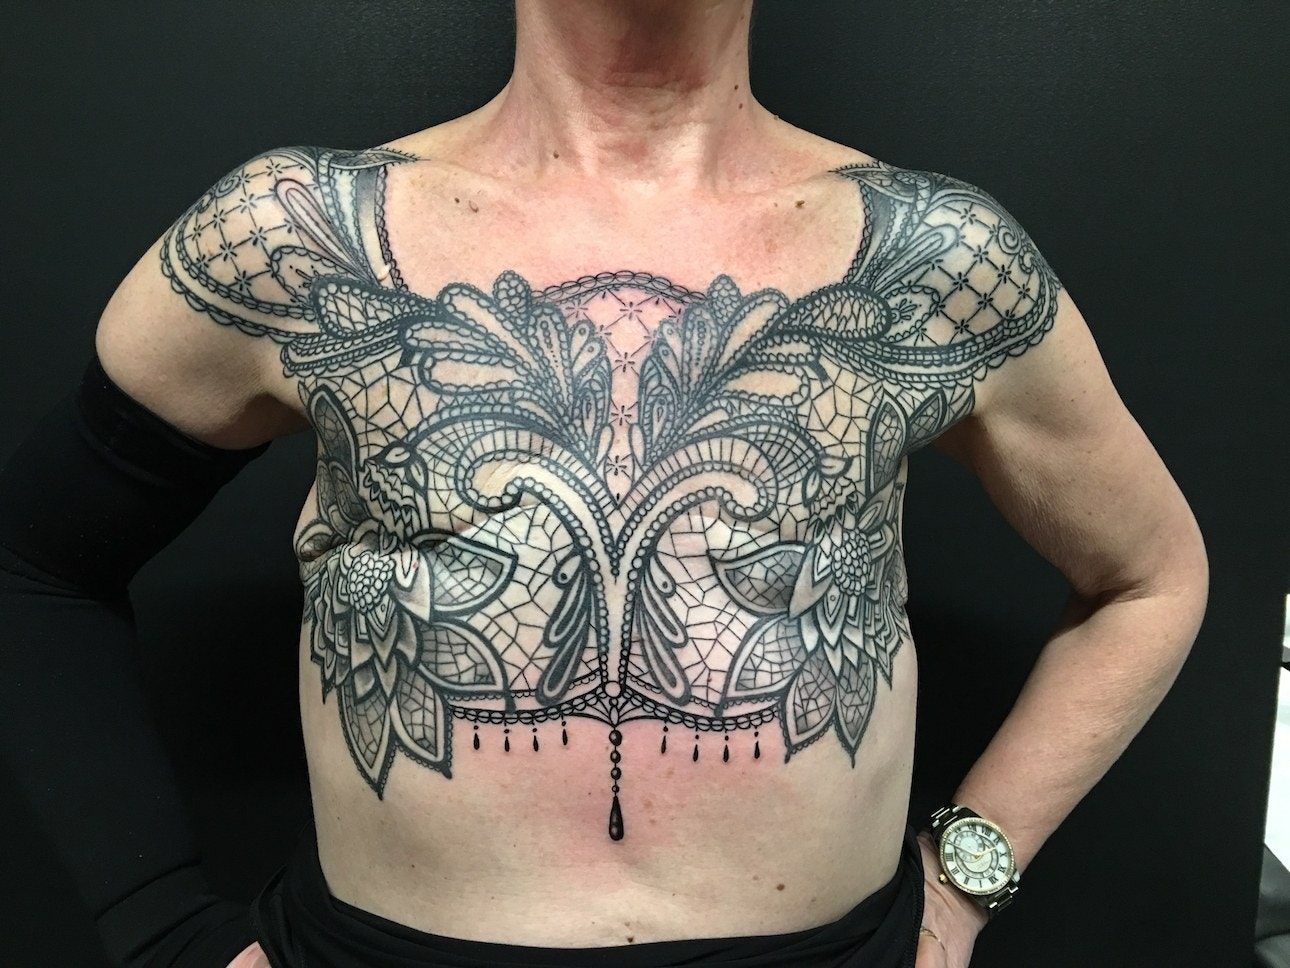 5 Years After Remission, Woman Gets Mastectomy Tattoo On